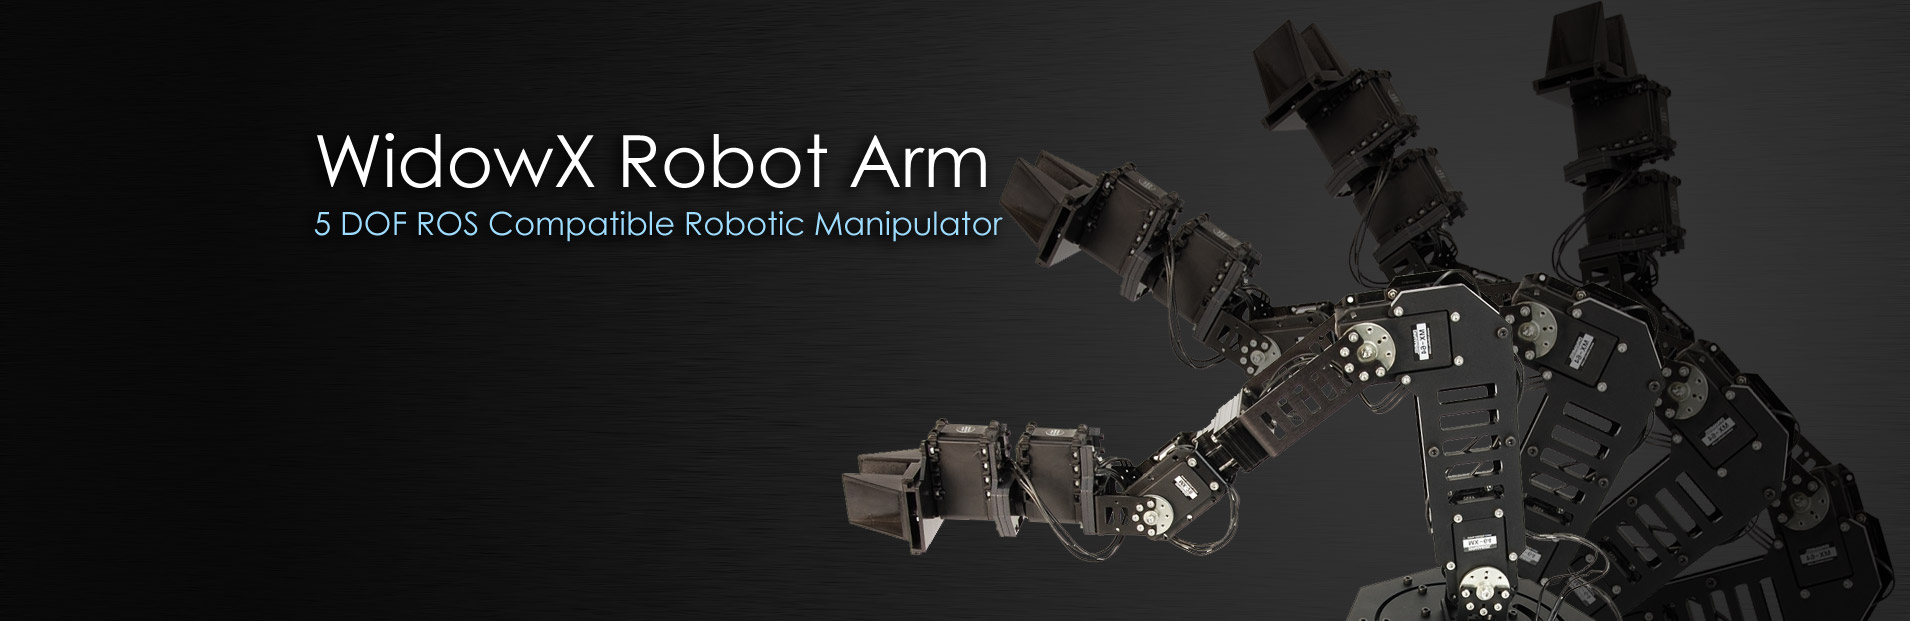 WidowX Robot Arm — 6 DOF Robotic Manipulator